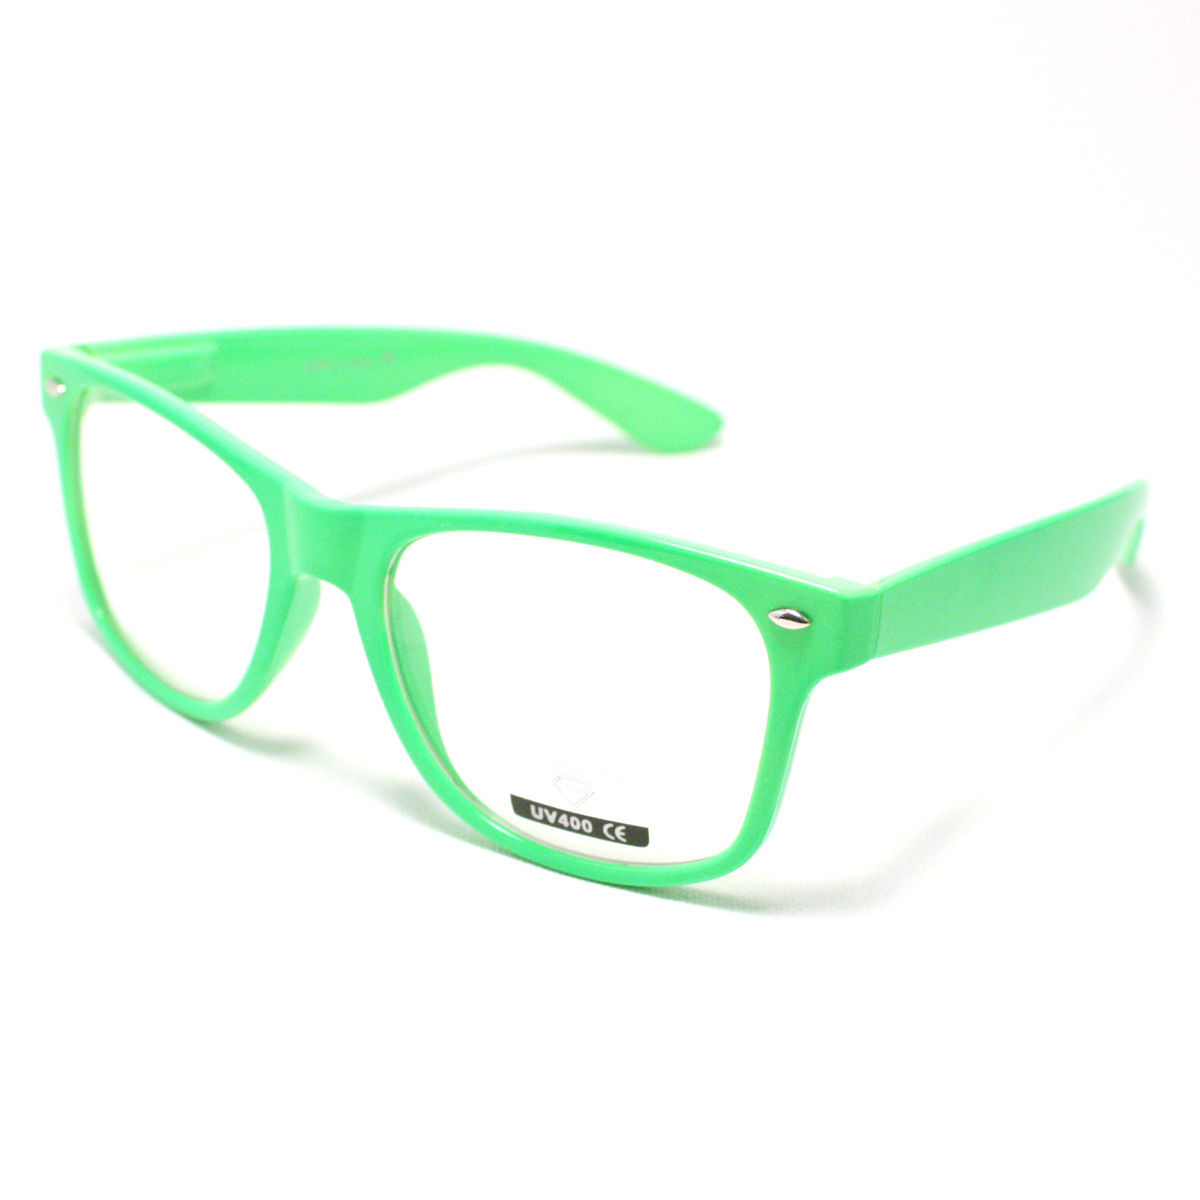 Bright Green Glasses Frames : VINTAGE Retro Classic CLEAR LENS Eyeglasses NEON GREEN ...